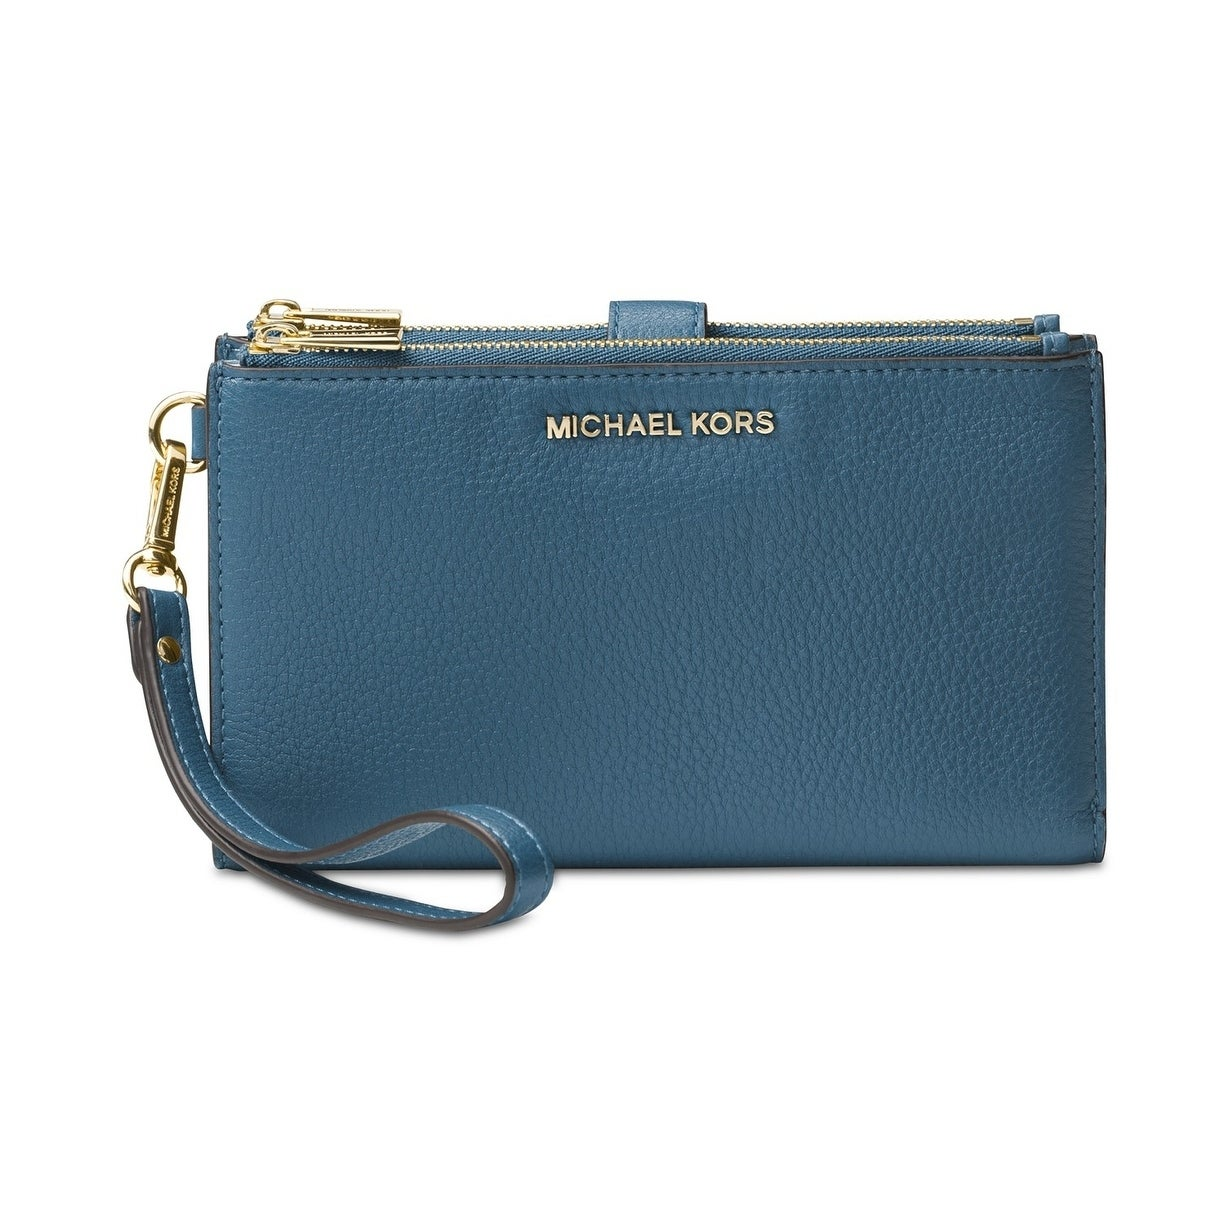 261d66dd9044 Shop MICHAEL Michael Kors Adele Double-Zip Pebble Leather Phone Wristlet  Dark Chambray - Free Shipping Today - Overstock - 27747438